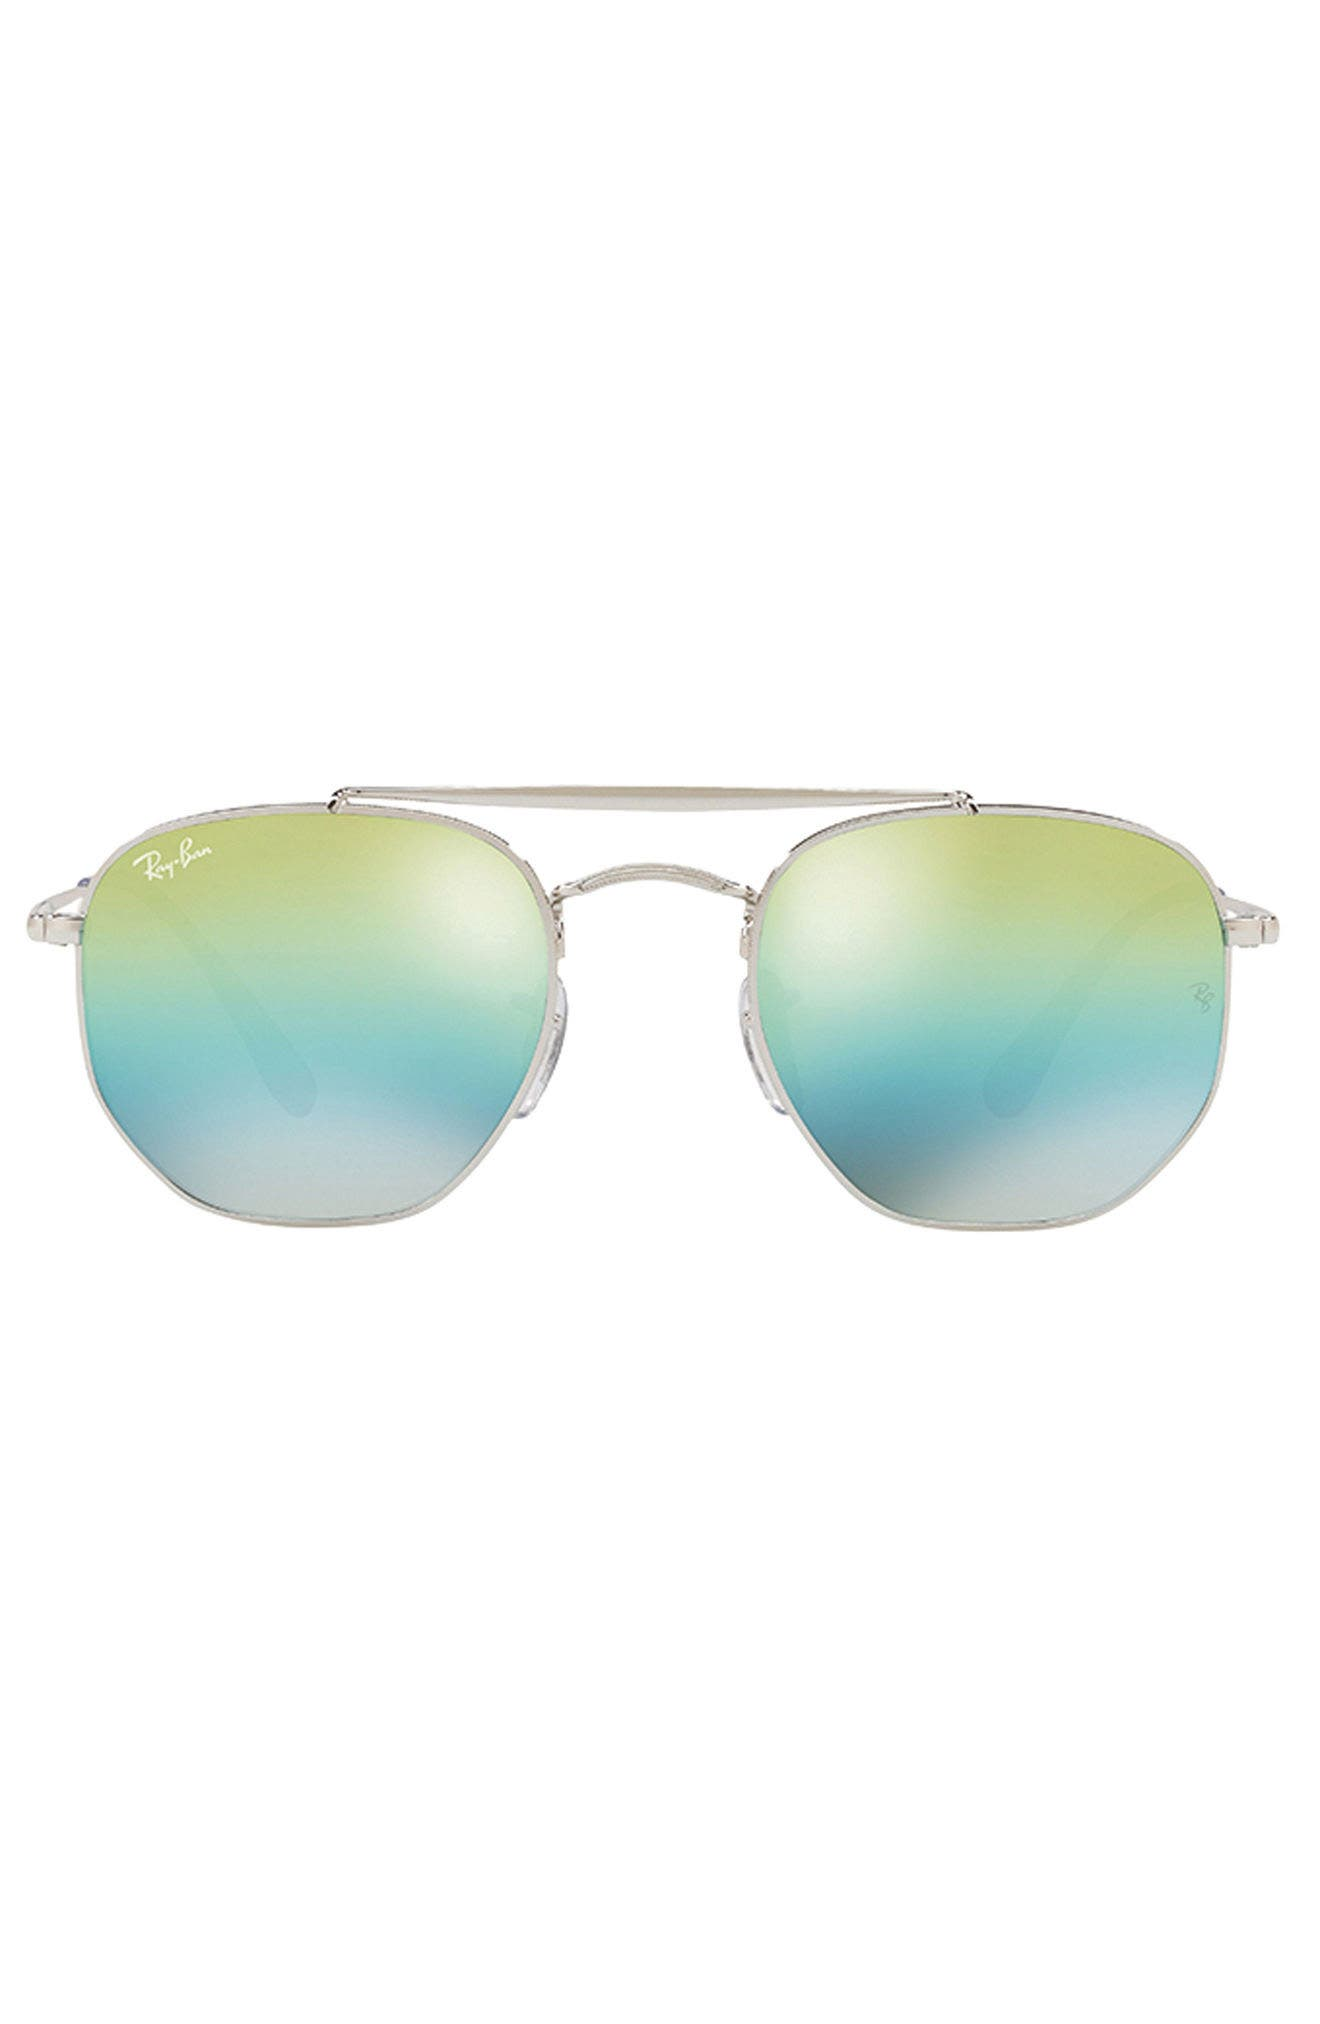 Marshal 54mm Aviator Sunglasses,                             Alternate thumbnail 2, color,                             BLUE/ GREEN